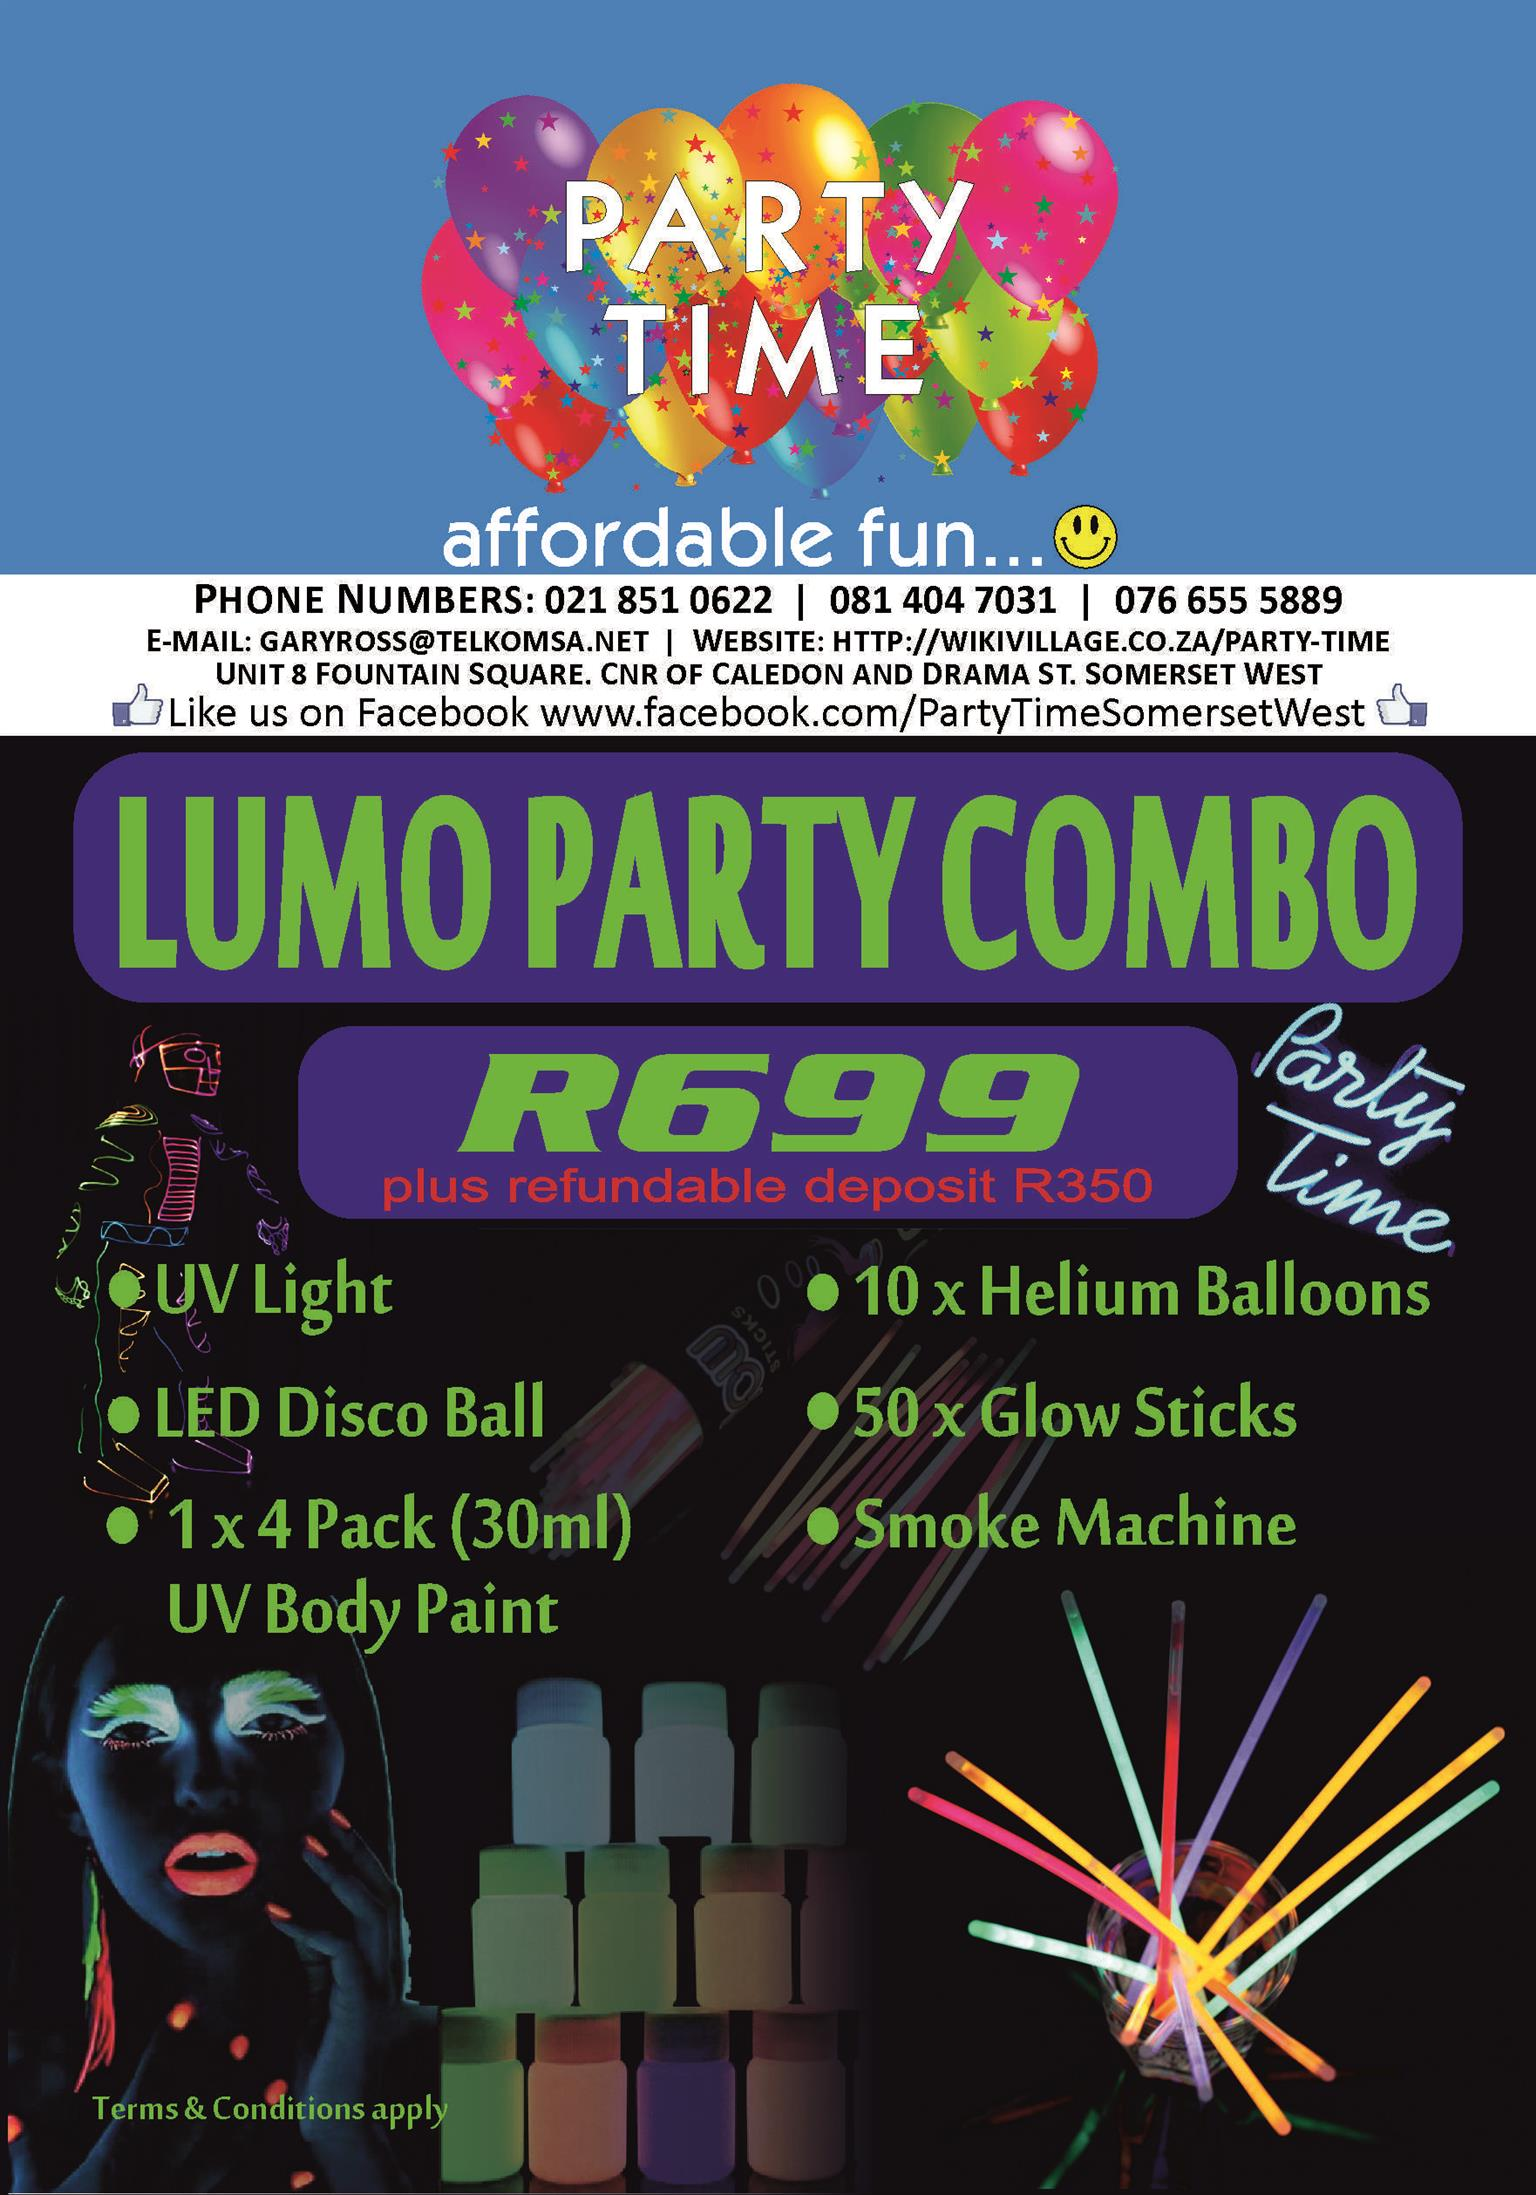 LUMO PARTY KIT FOR R699!